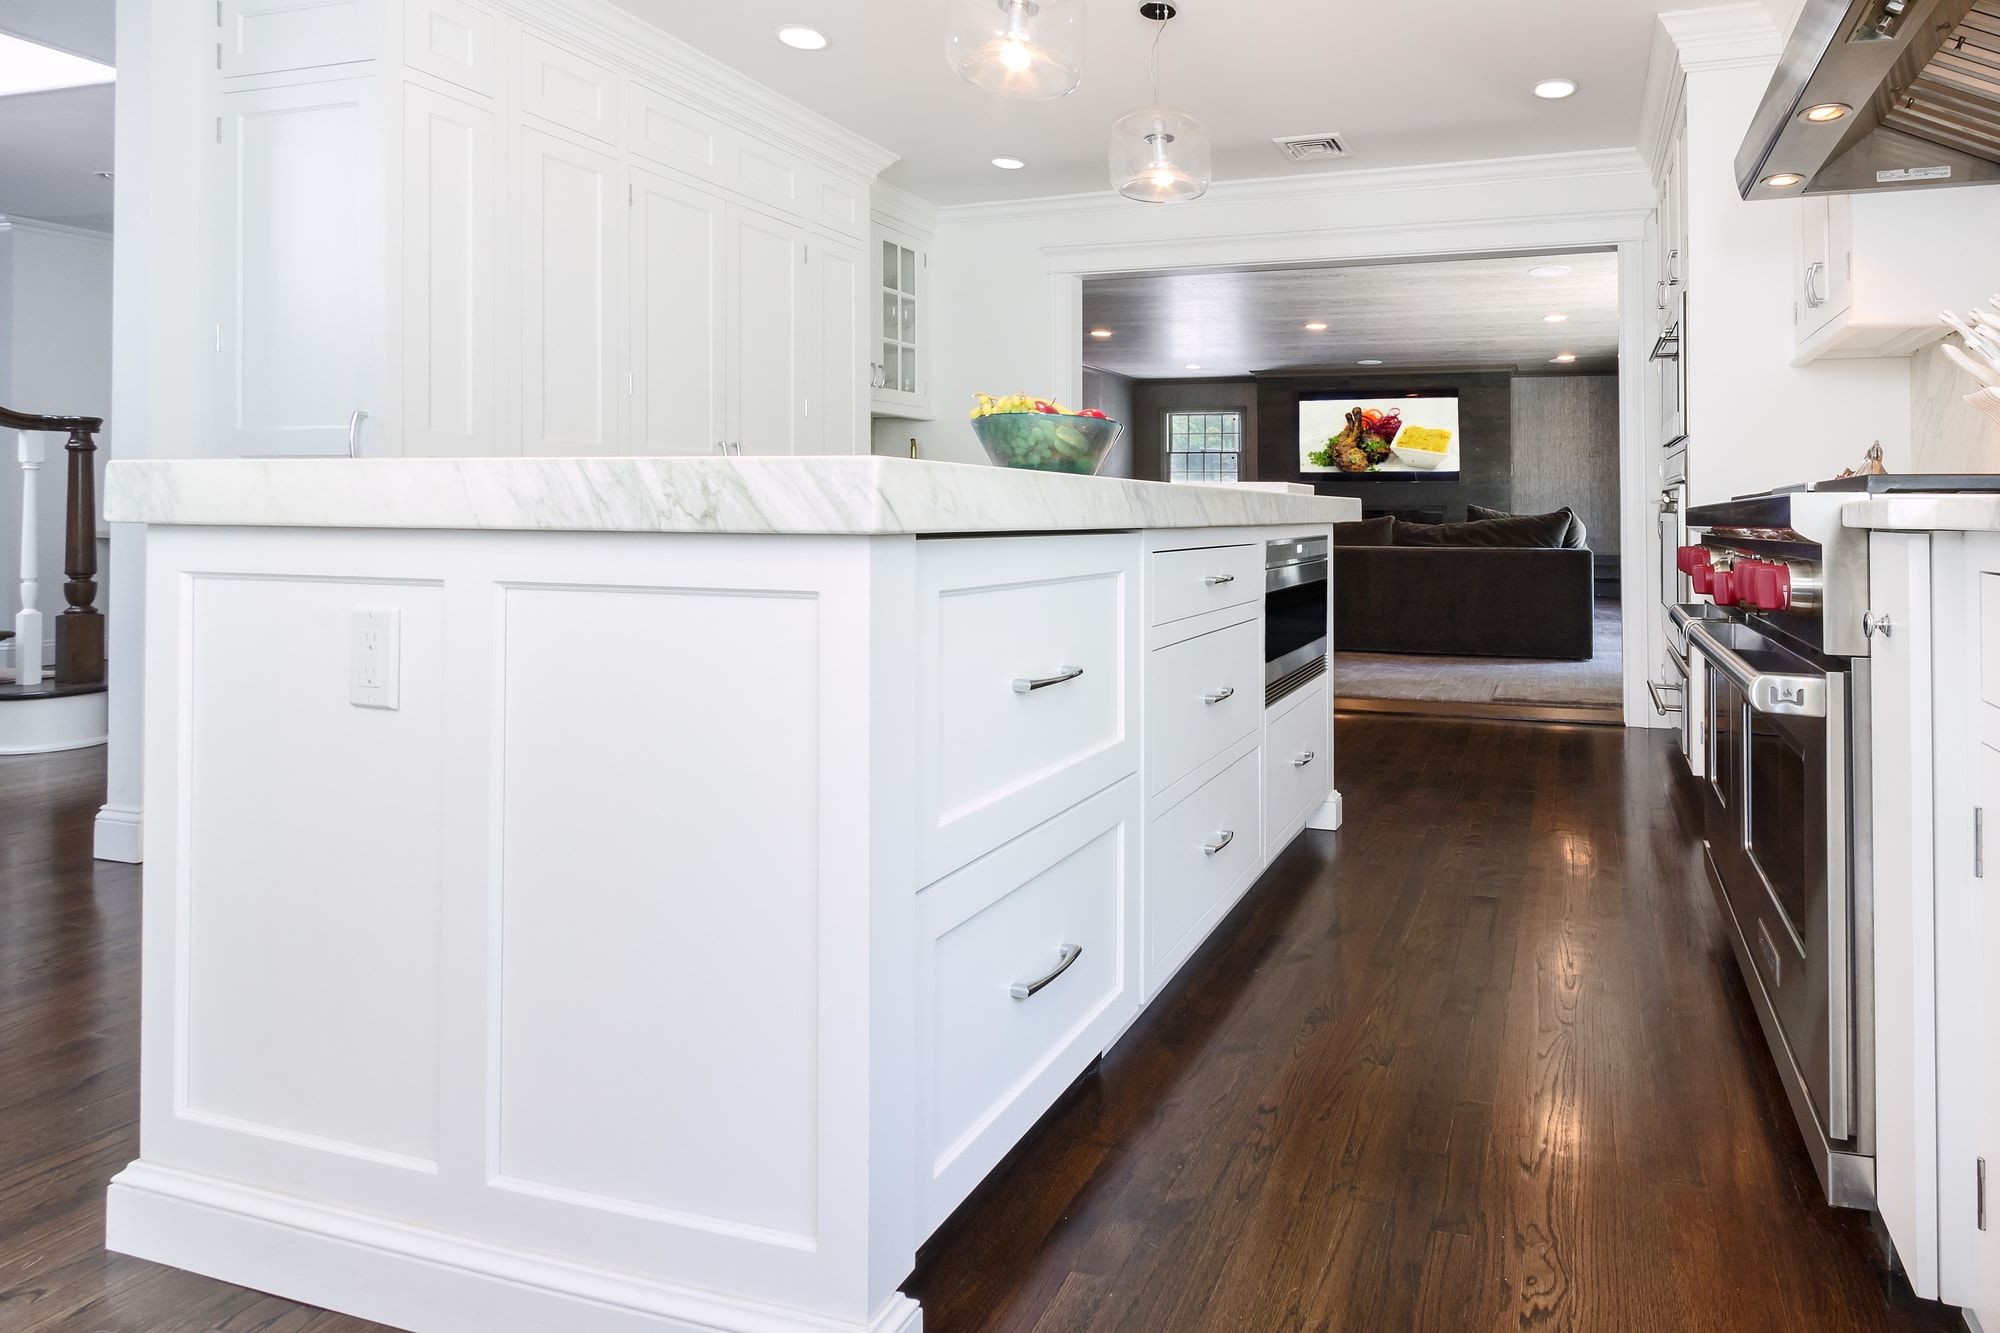 Transitional style kitchen with custom built under counter cabinets